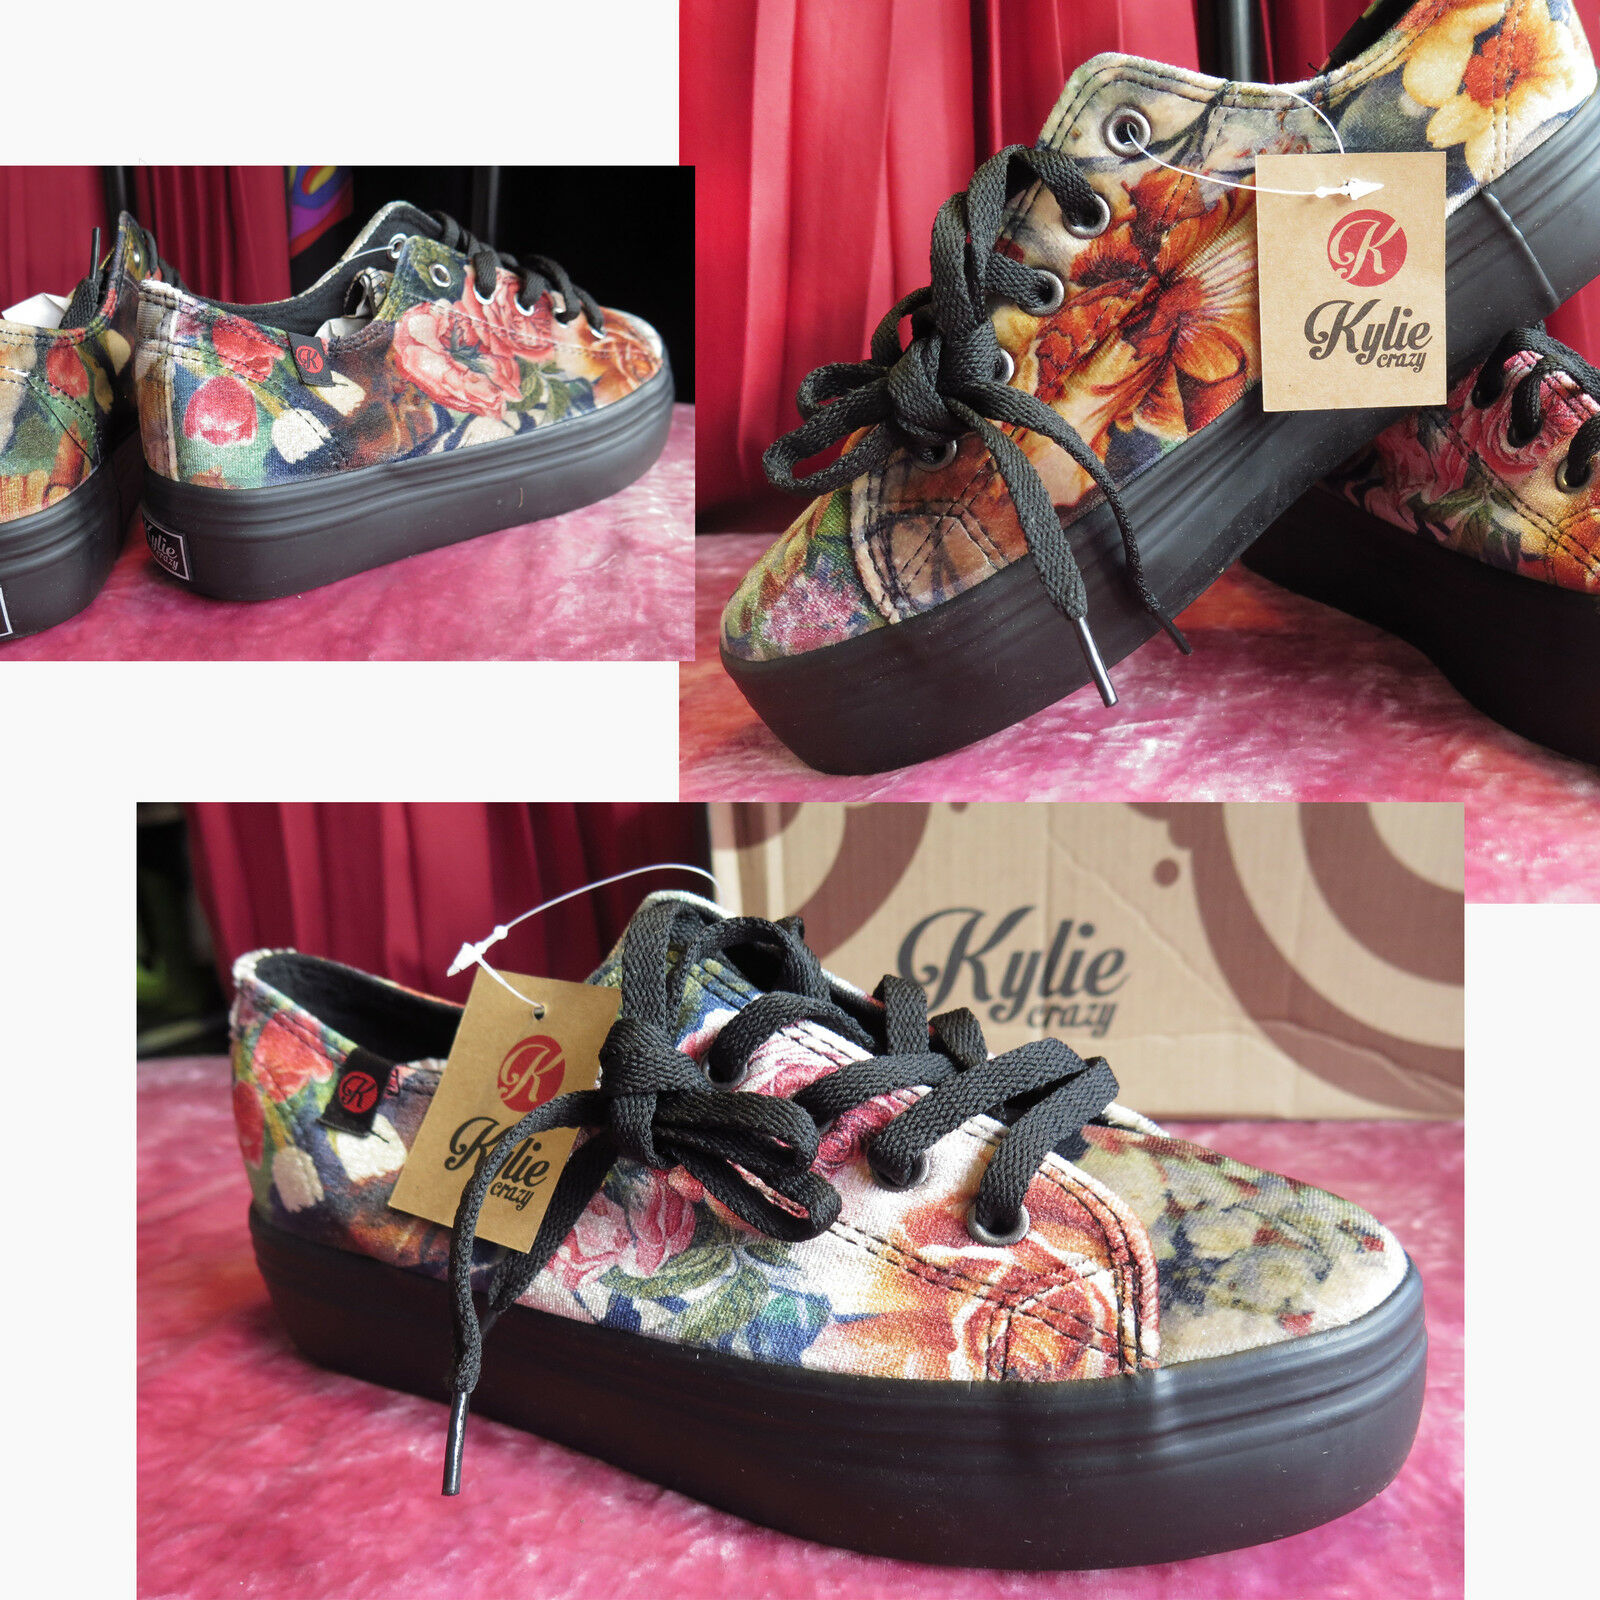 NEW HIGH QUALITY SPANISH FLORAL VELVET LACE UP CREEPERS PLIMSOLLS ON PLATFORM